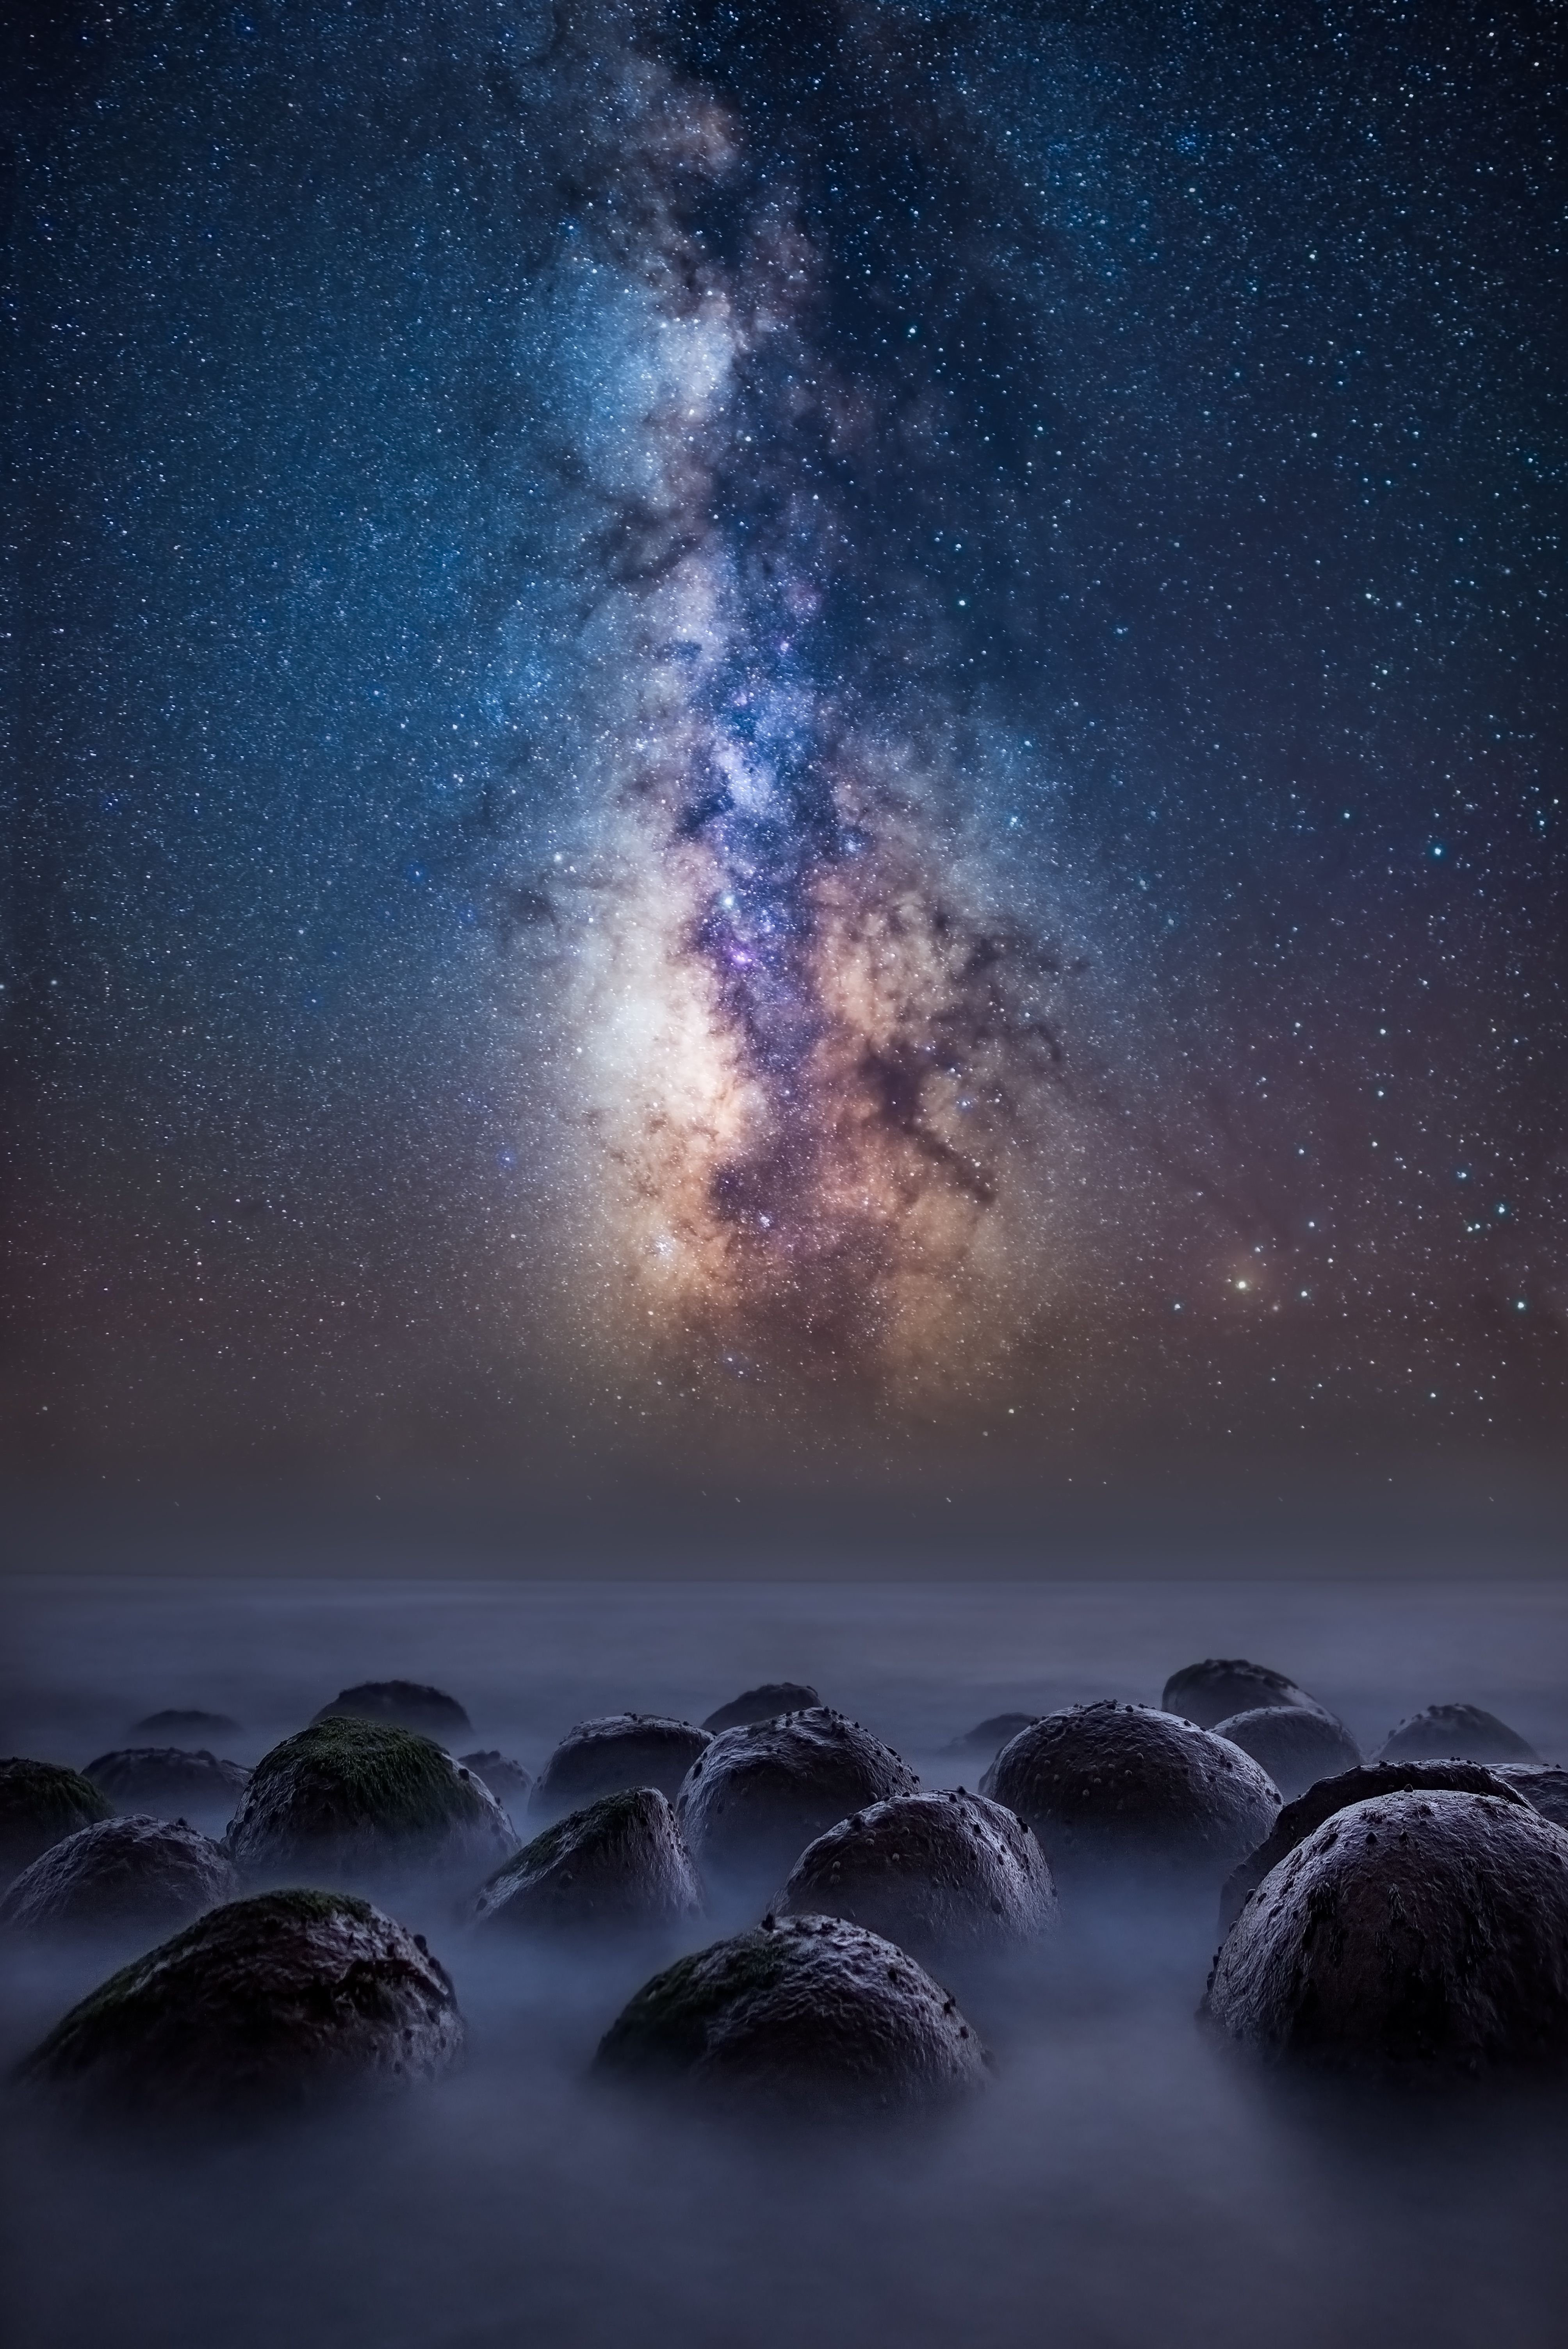 Milky Way Over The Bowling Ball Beach In Northern California 4016x6016 Https Ift Tt 2ijxbe5 Astronomy Photography Milky Way Photography Inspiration Nature